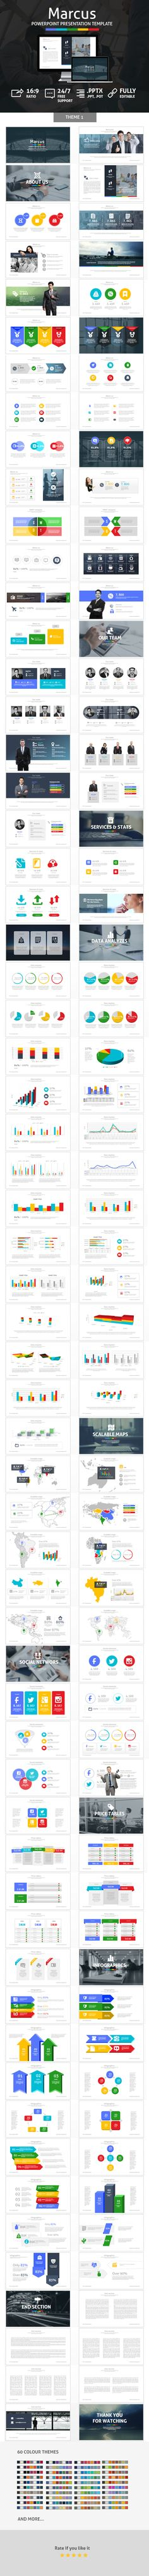 Marcus Powerpoint Presentation Template. Download here: http://graphicriver.net/item/marcus-powerpoint-presentation-template/15604204?ref=ksioks